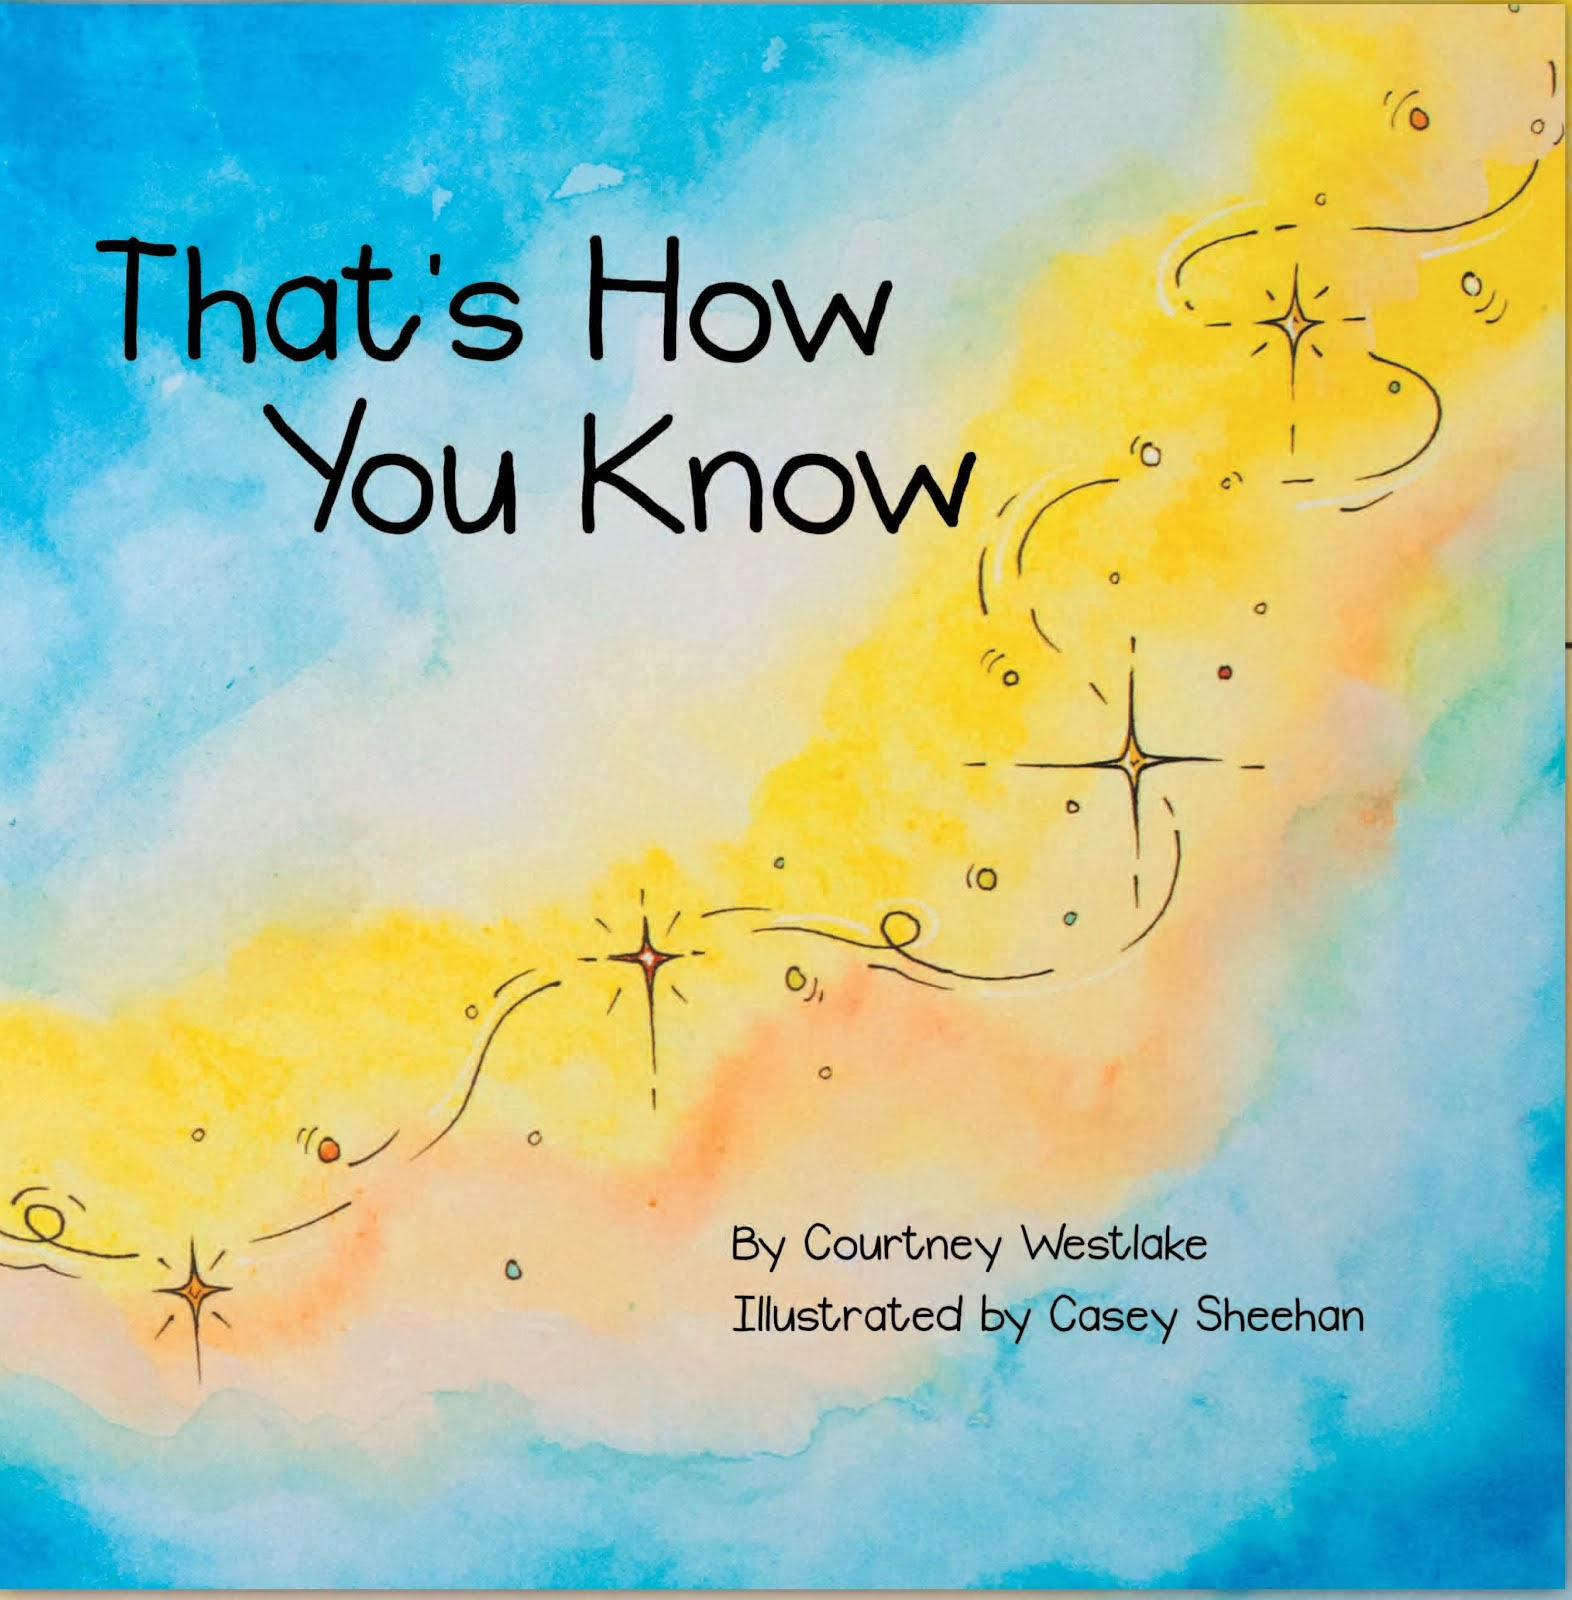 Check out my newly released Christian children's book!